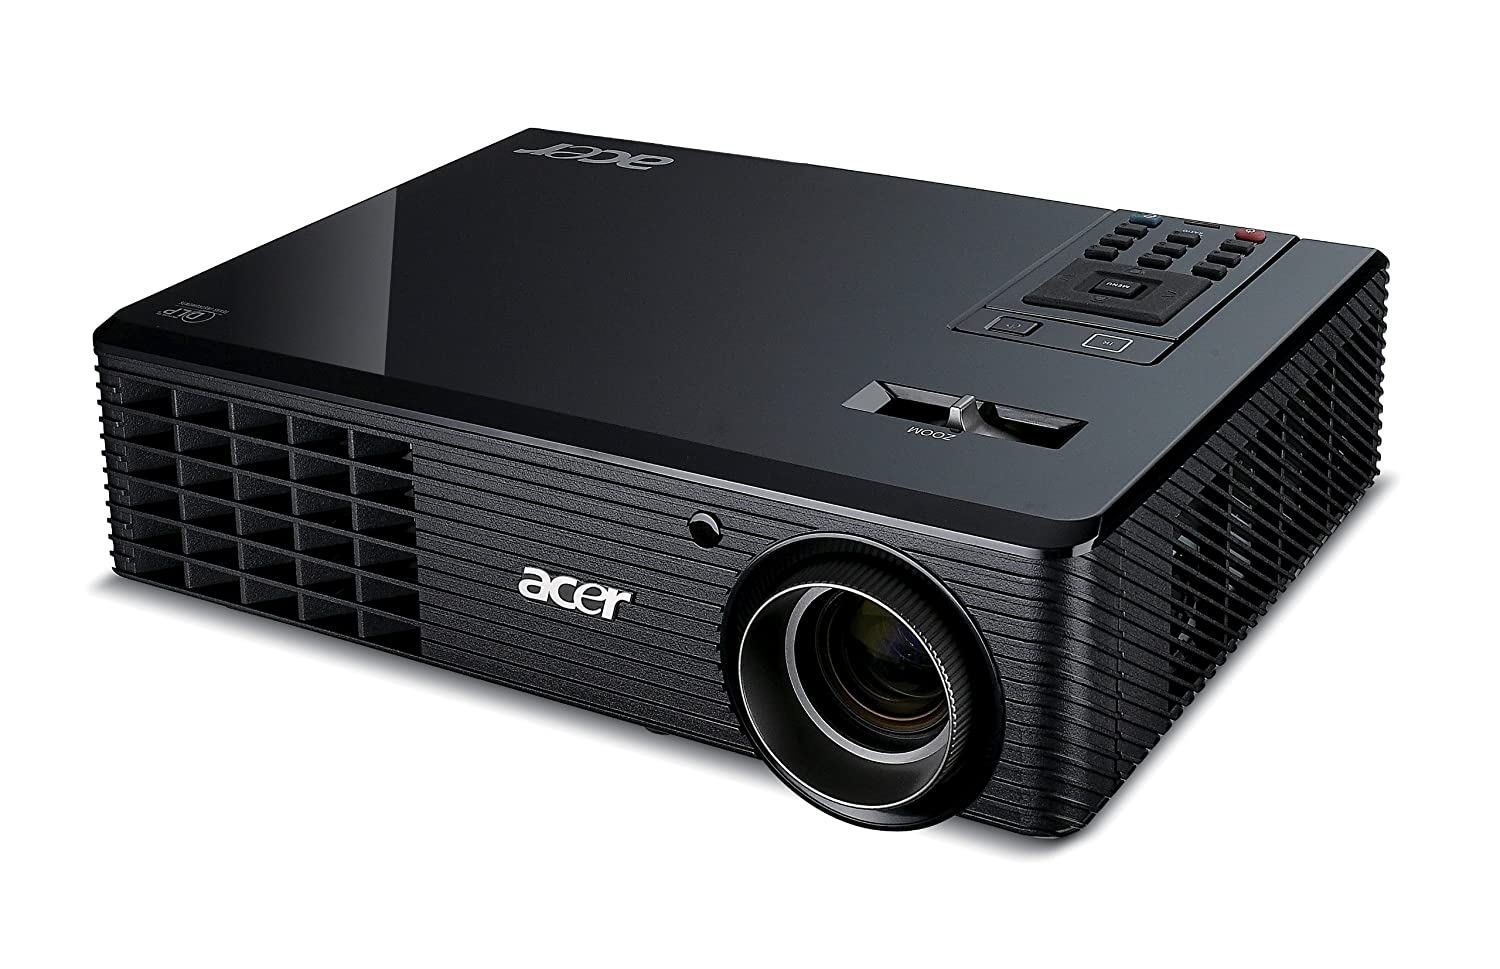 Acer X110 Projector SVGA DLP 3D, ECO, CBII+, Zoom, 2.2Kg, 4000:1, 2500Lm  (discontinued by manufacturer): Amazon.co.uk: TV